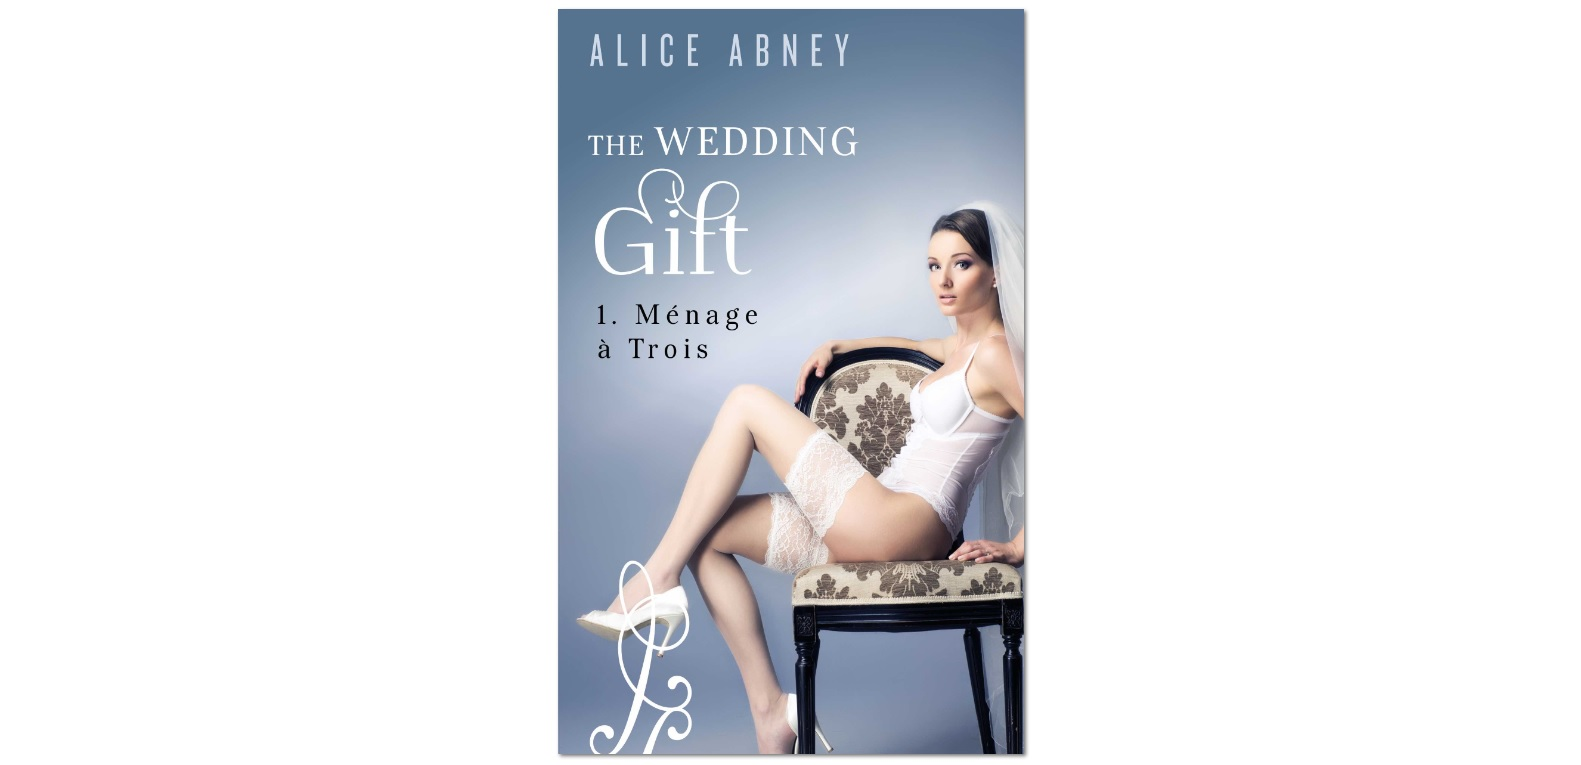 The Wedding Gift: Menage a Trois